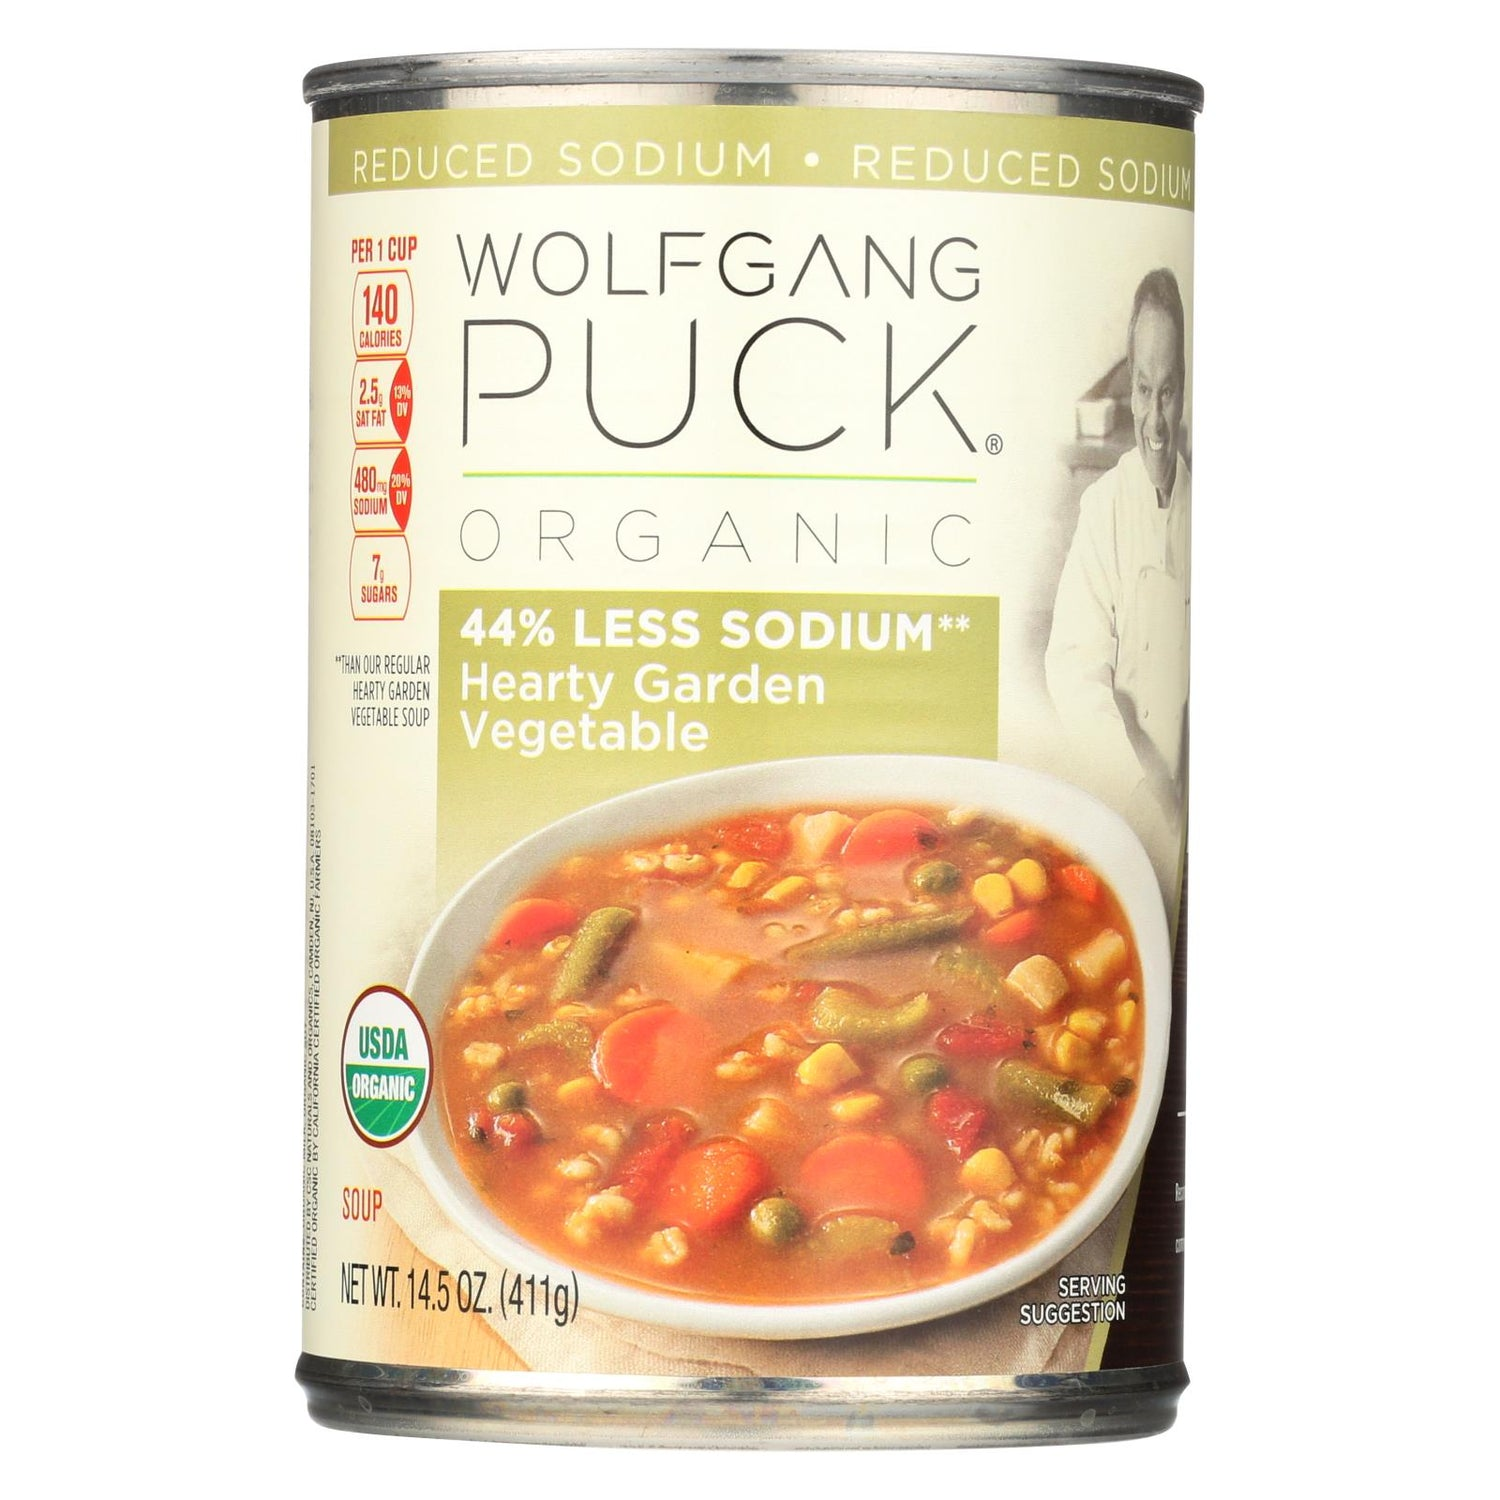 Wolfgang Puck Organic Soup - Reduced Sodium Hearty Garden Vegetable - Case Of 12 - 14.5 Oz